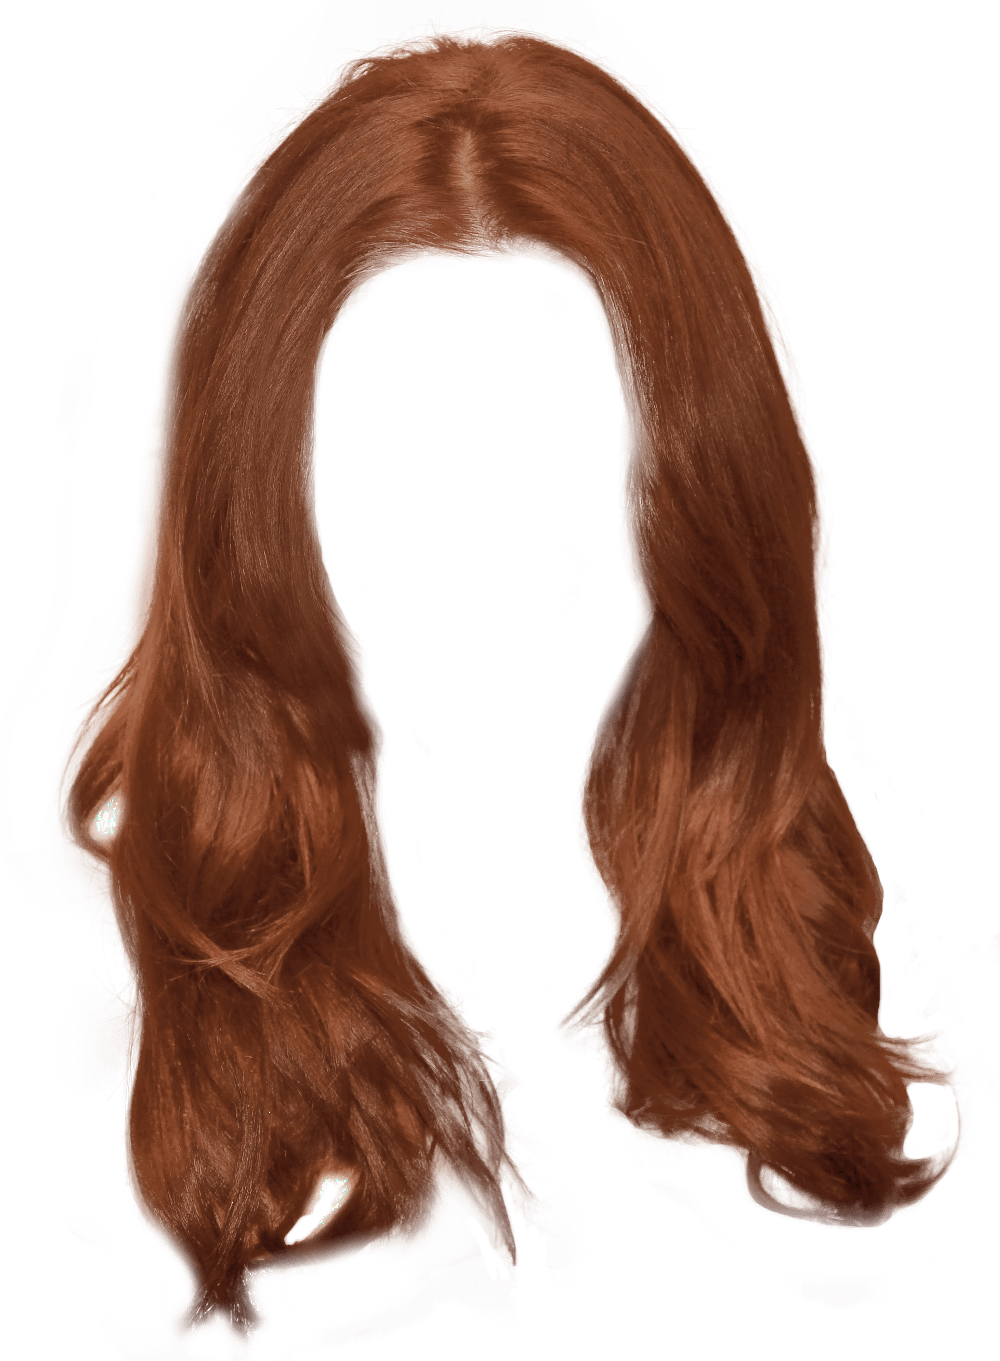 Women Hair Png Image PNG Image - Hair PNG